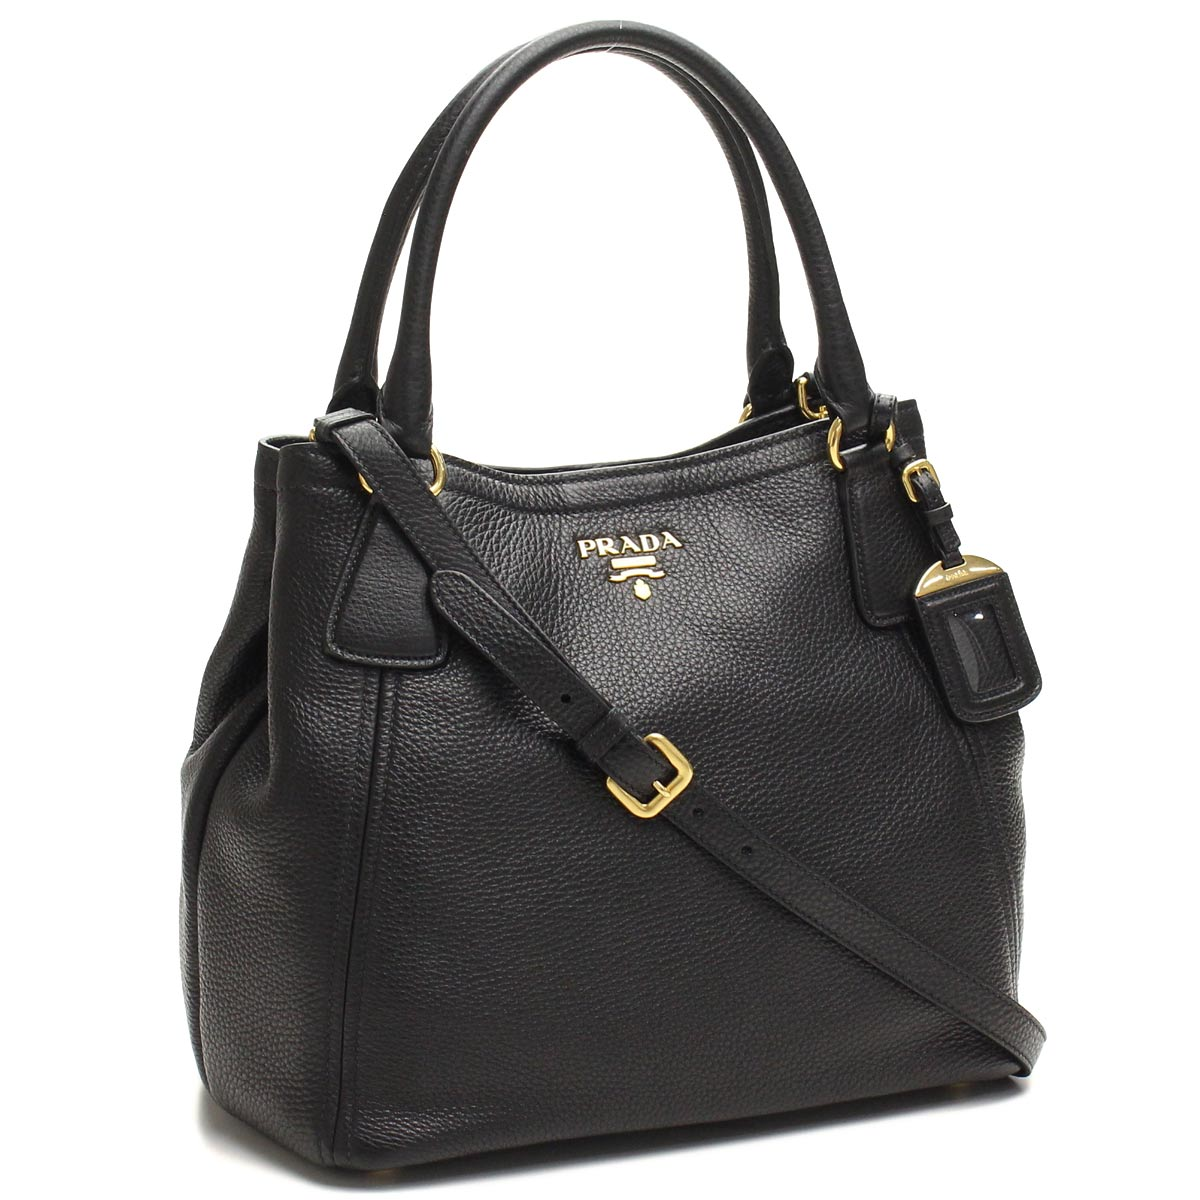 Bighit The total brand wholesale  Prada outlet PRADA (OUTLET) tote bag  BN2534-O-UWL-F0002 NERO black( taxfree send by EMS authentic A brand new  item ) ... 3a3ab007a2c6c